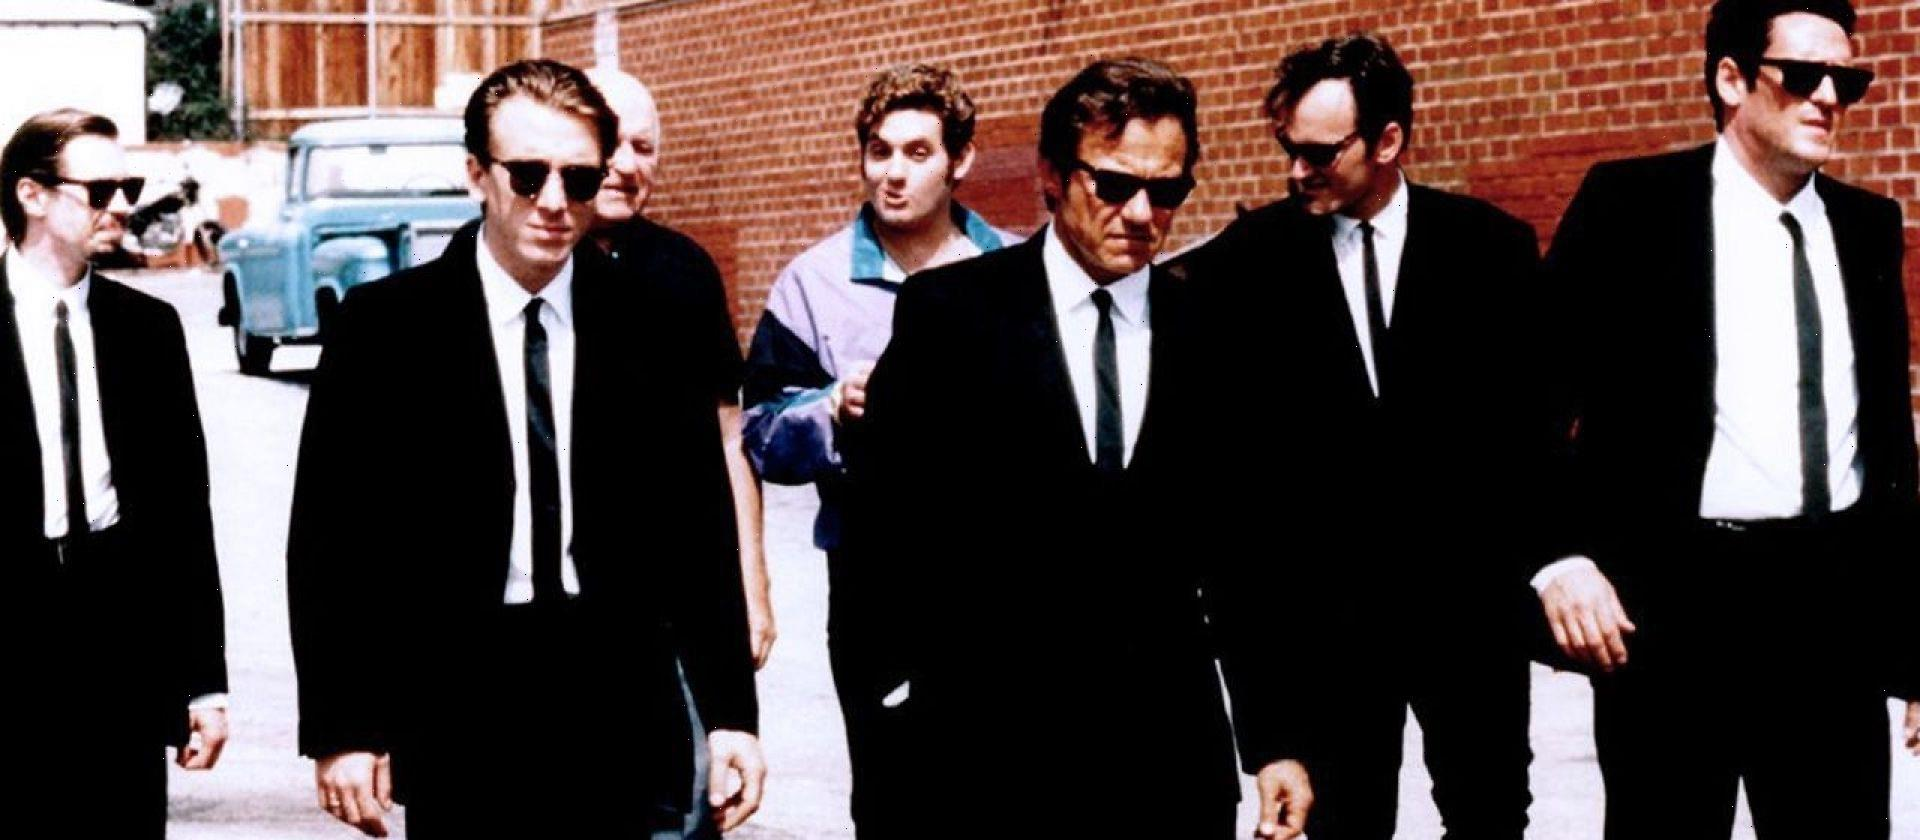 Quentin Tarantino Considered Remaking His Own 'Reservoir Dogs' for His Final Movie